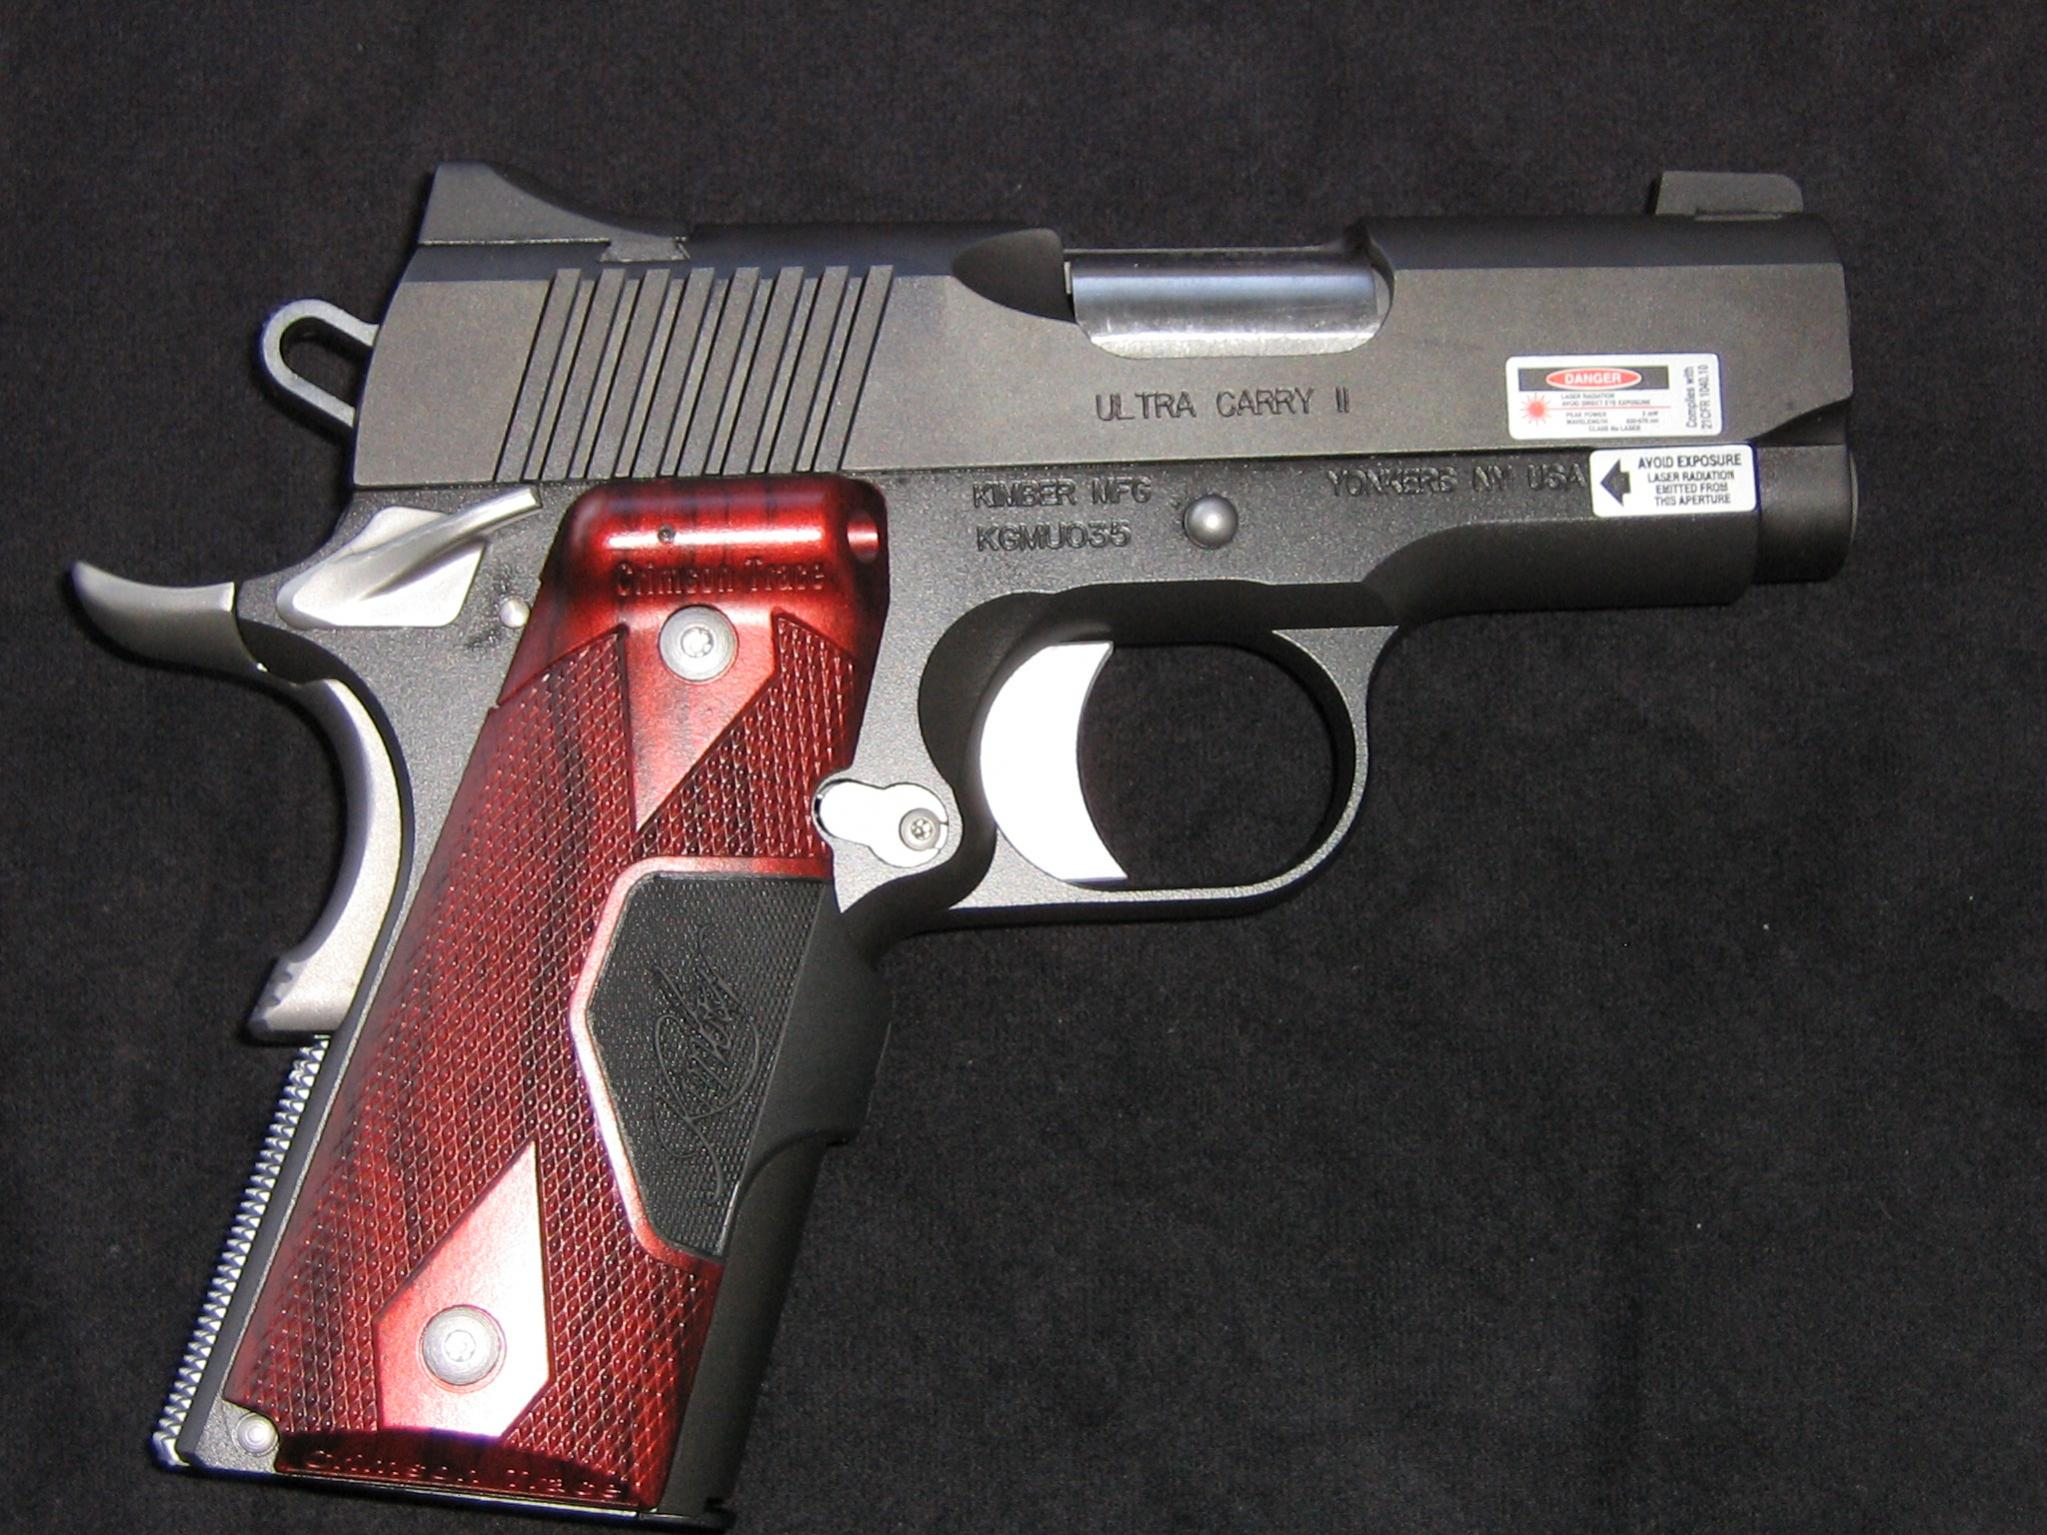 Pictures of my Kimber Ultra Carry II LG-img_0438.jpg